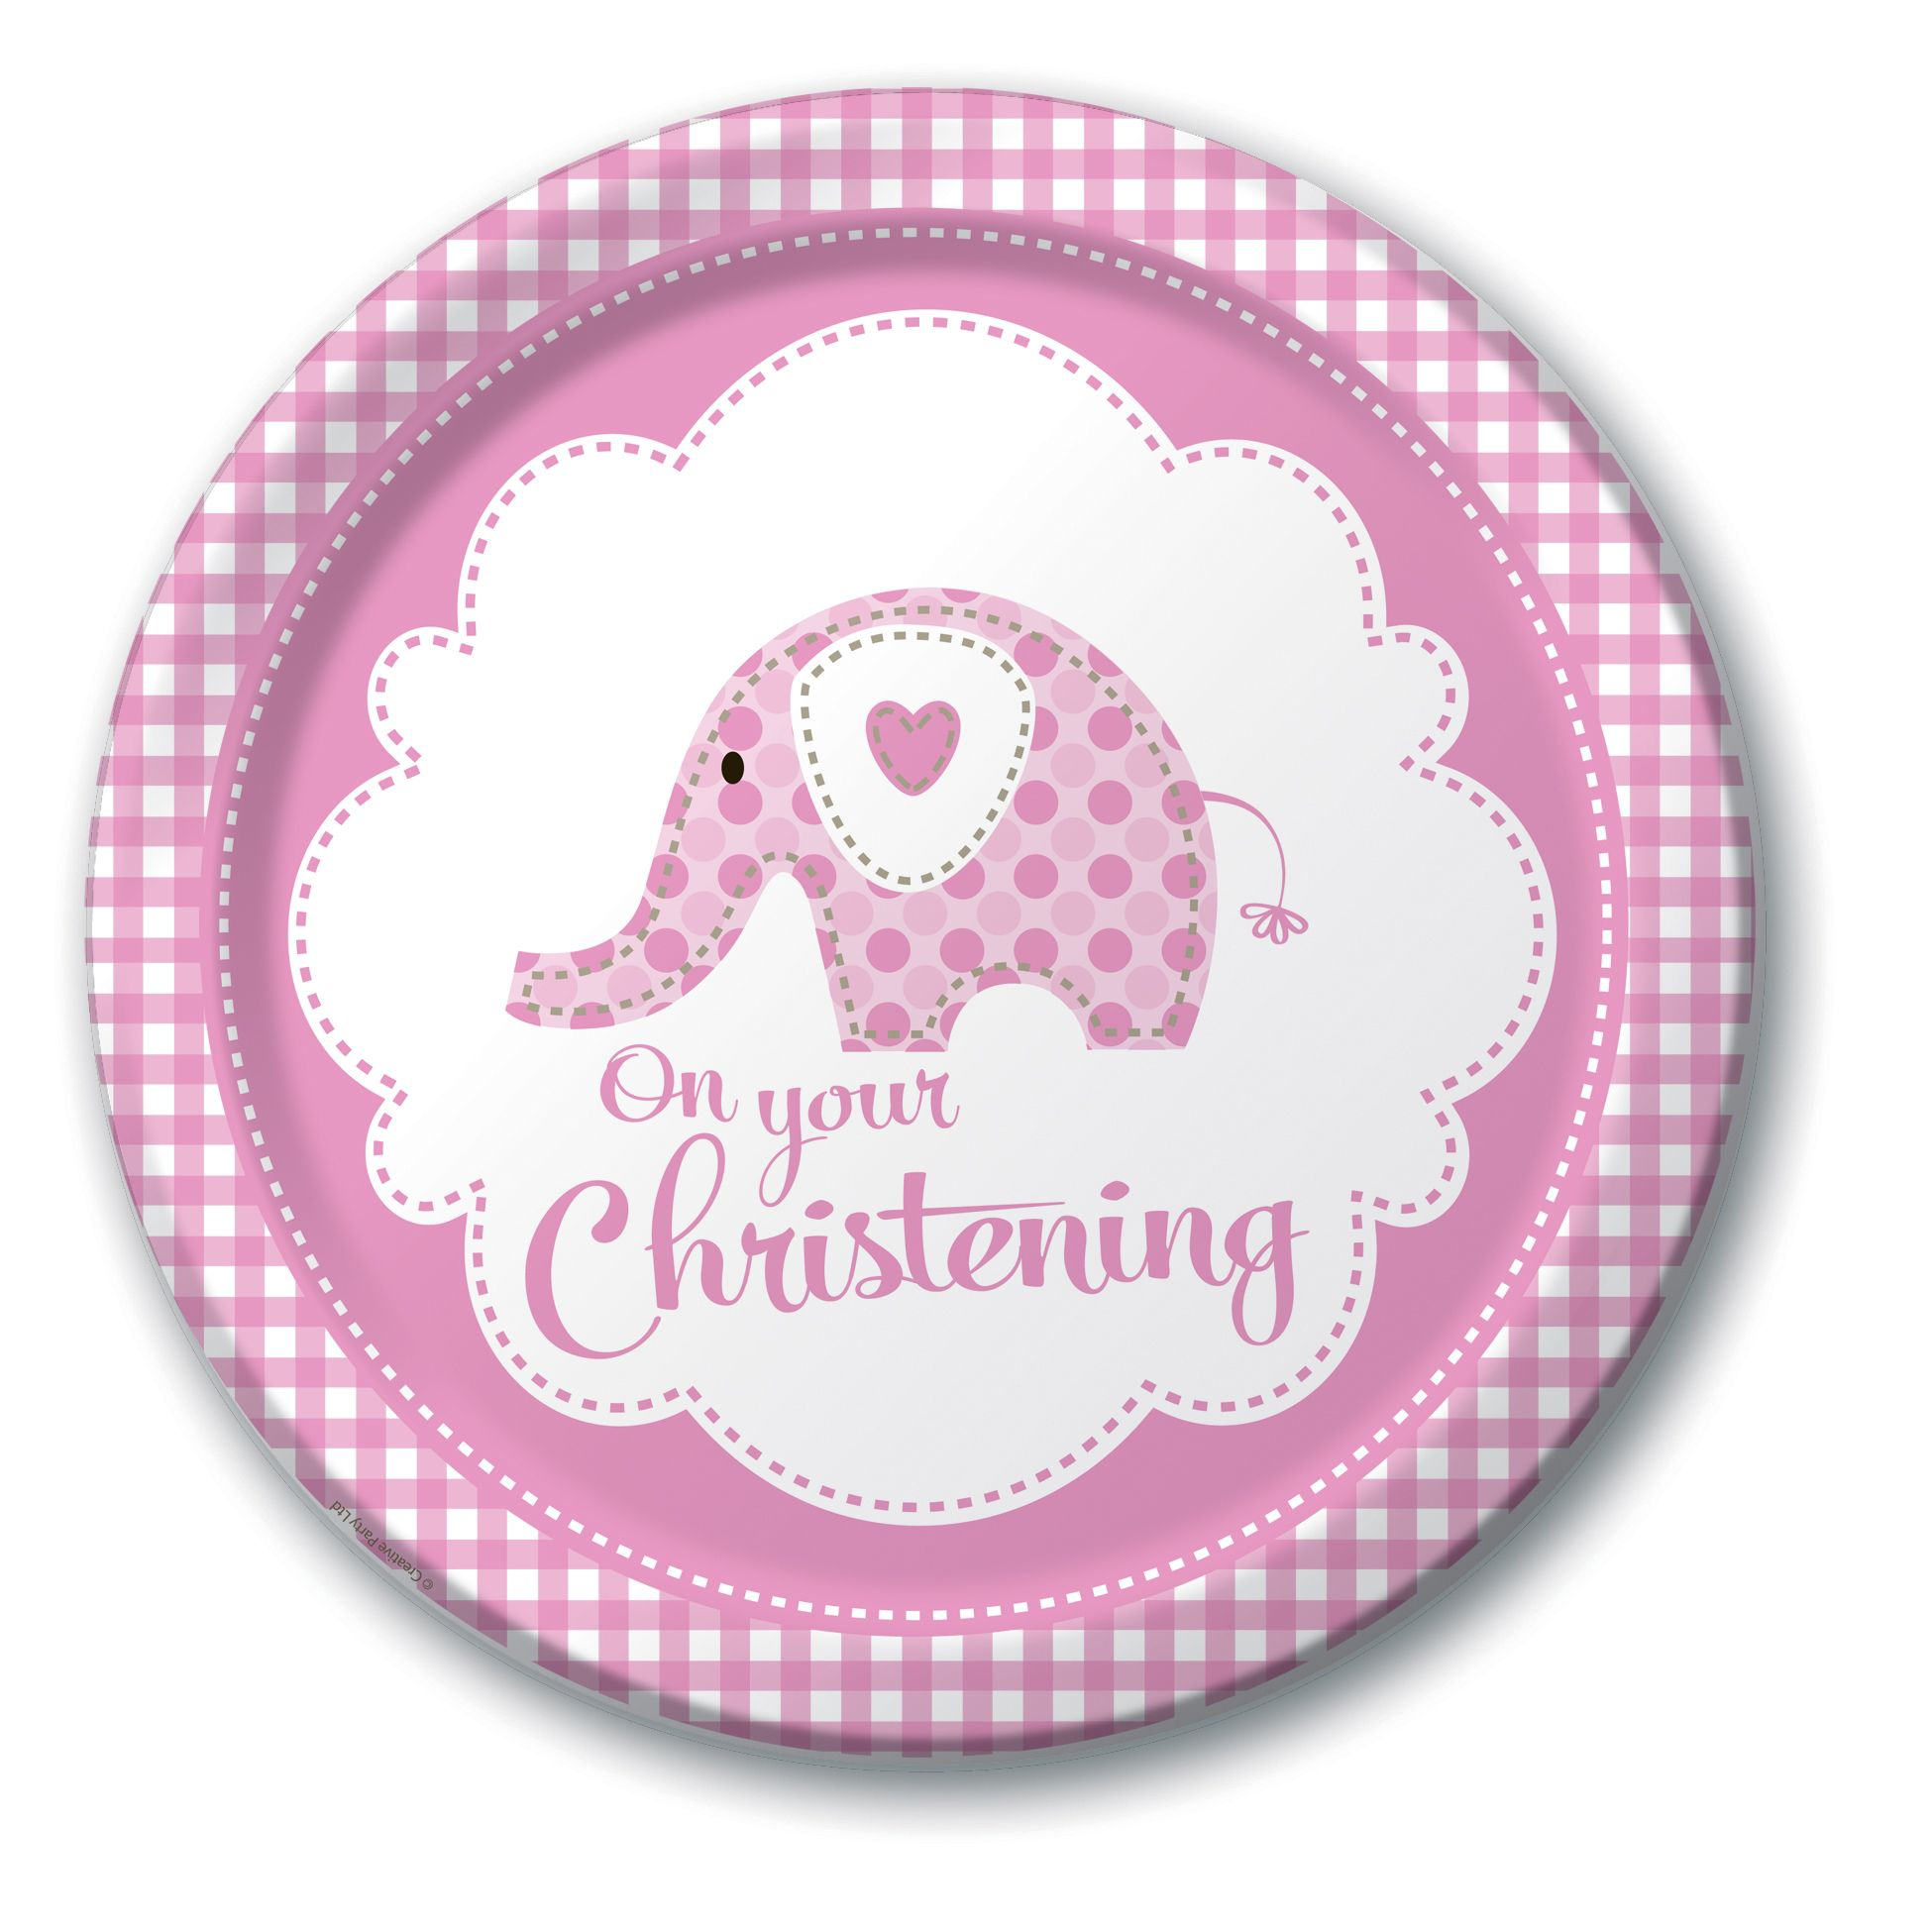 Christening Girl party supplies | Party savvy